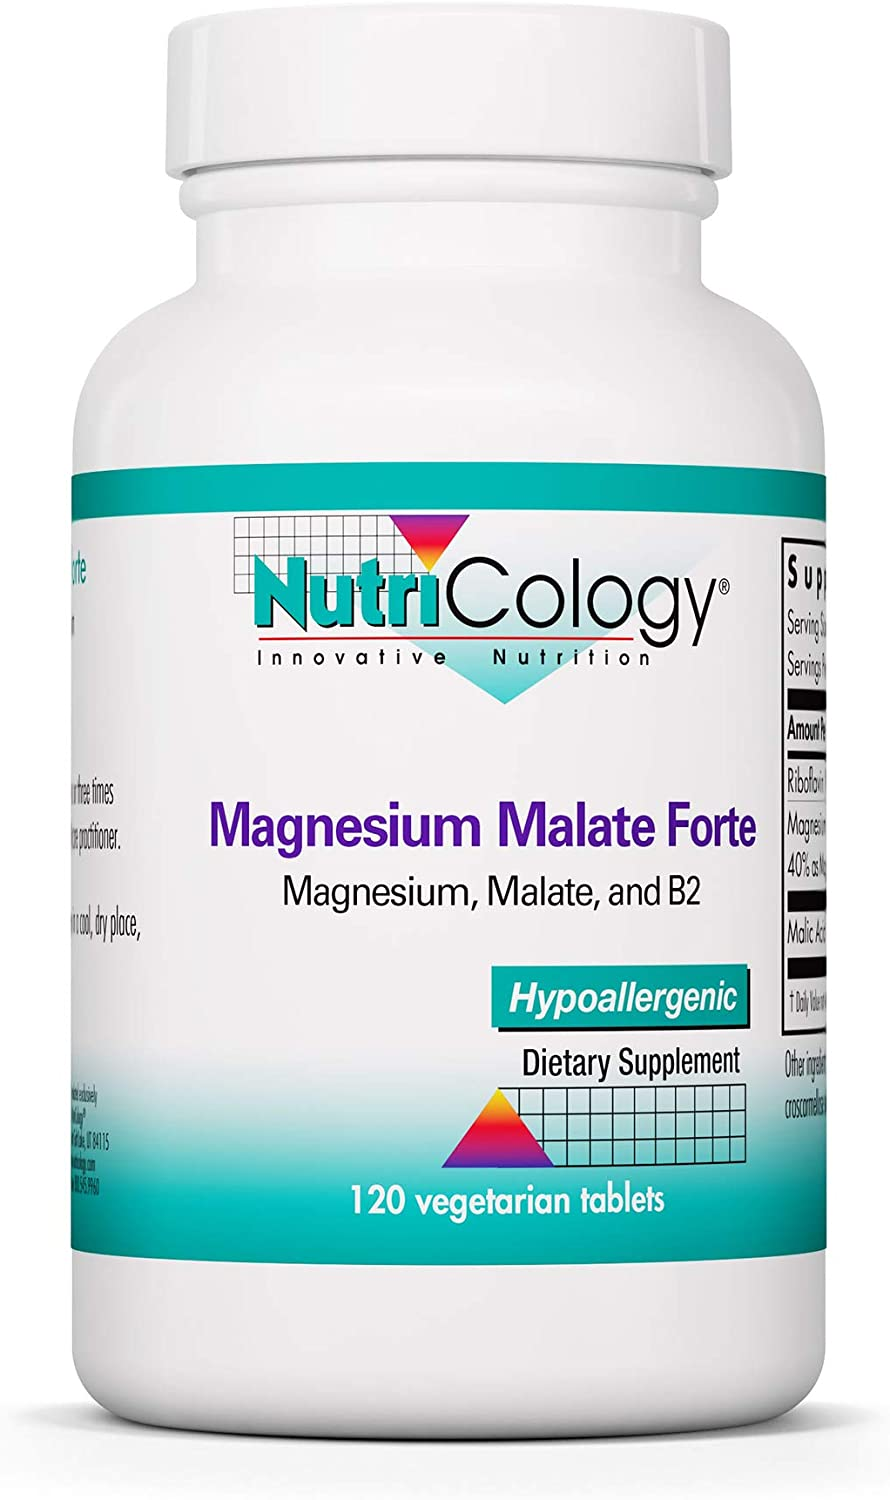 NutriCology Outlet Houston Mall sale feature Magnesium Malate Forte - Energy with Sup Riboflavin